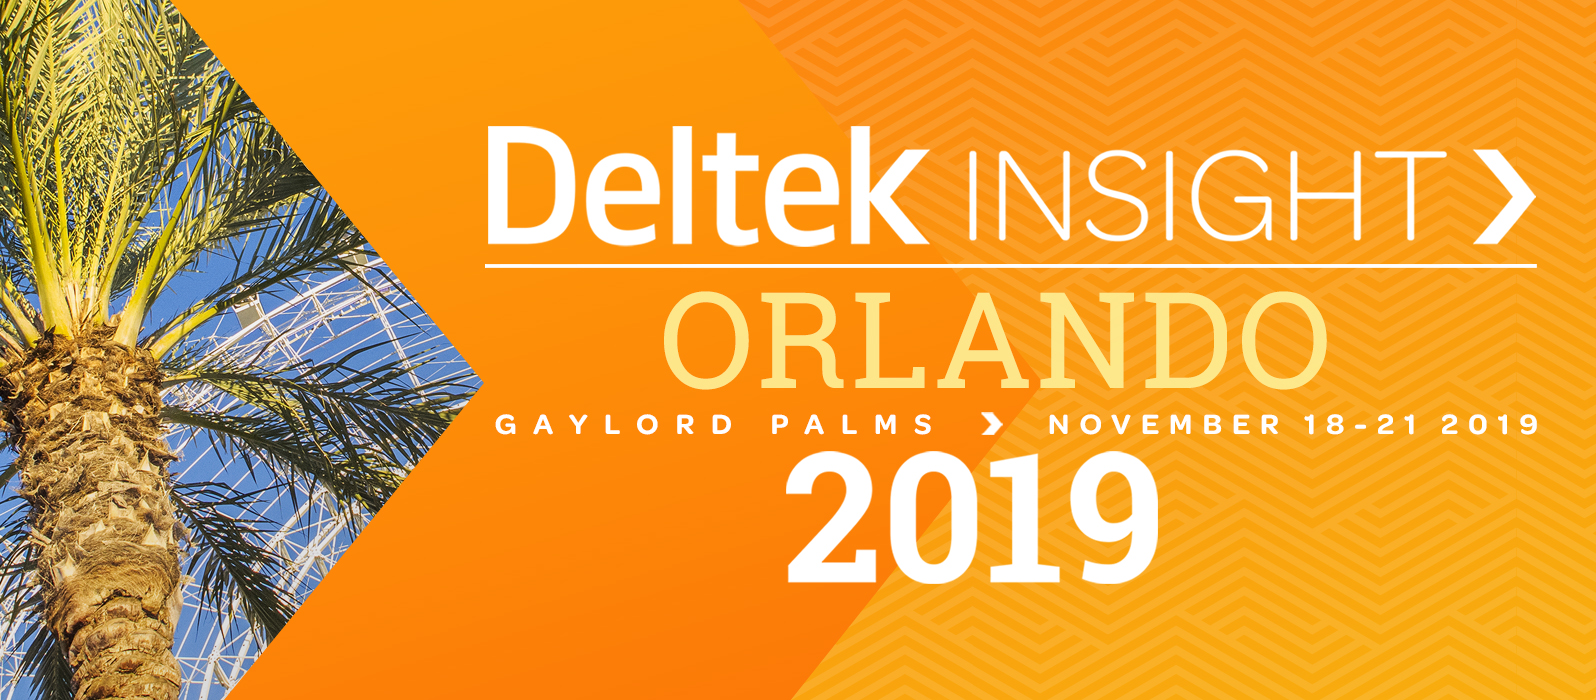 deltek-insight-2019-orlando-orange